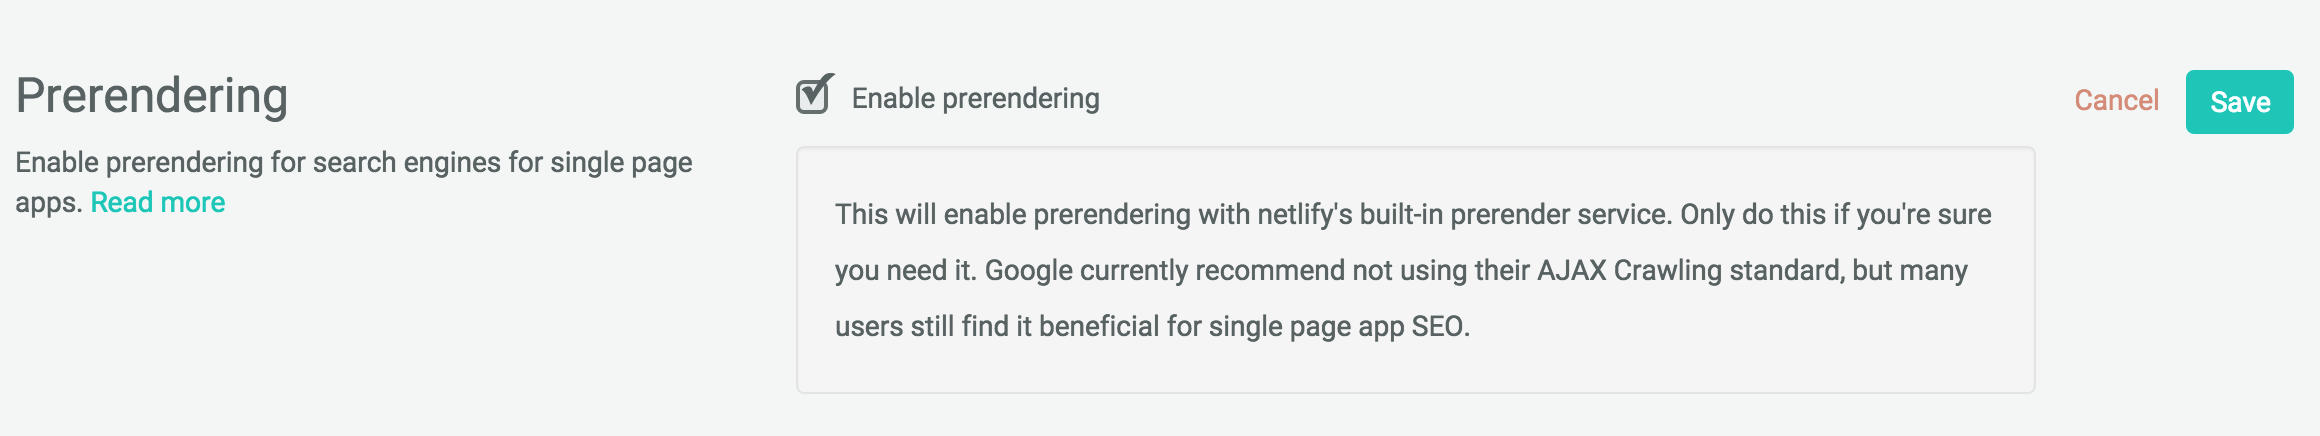 Enabling netlify's built-in prerendering